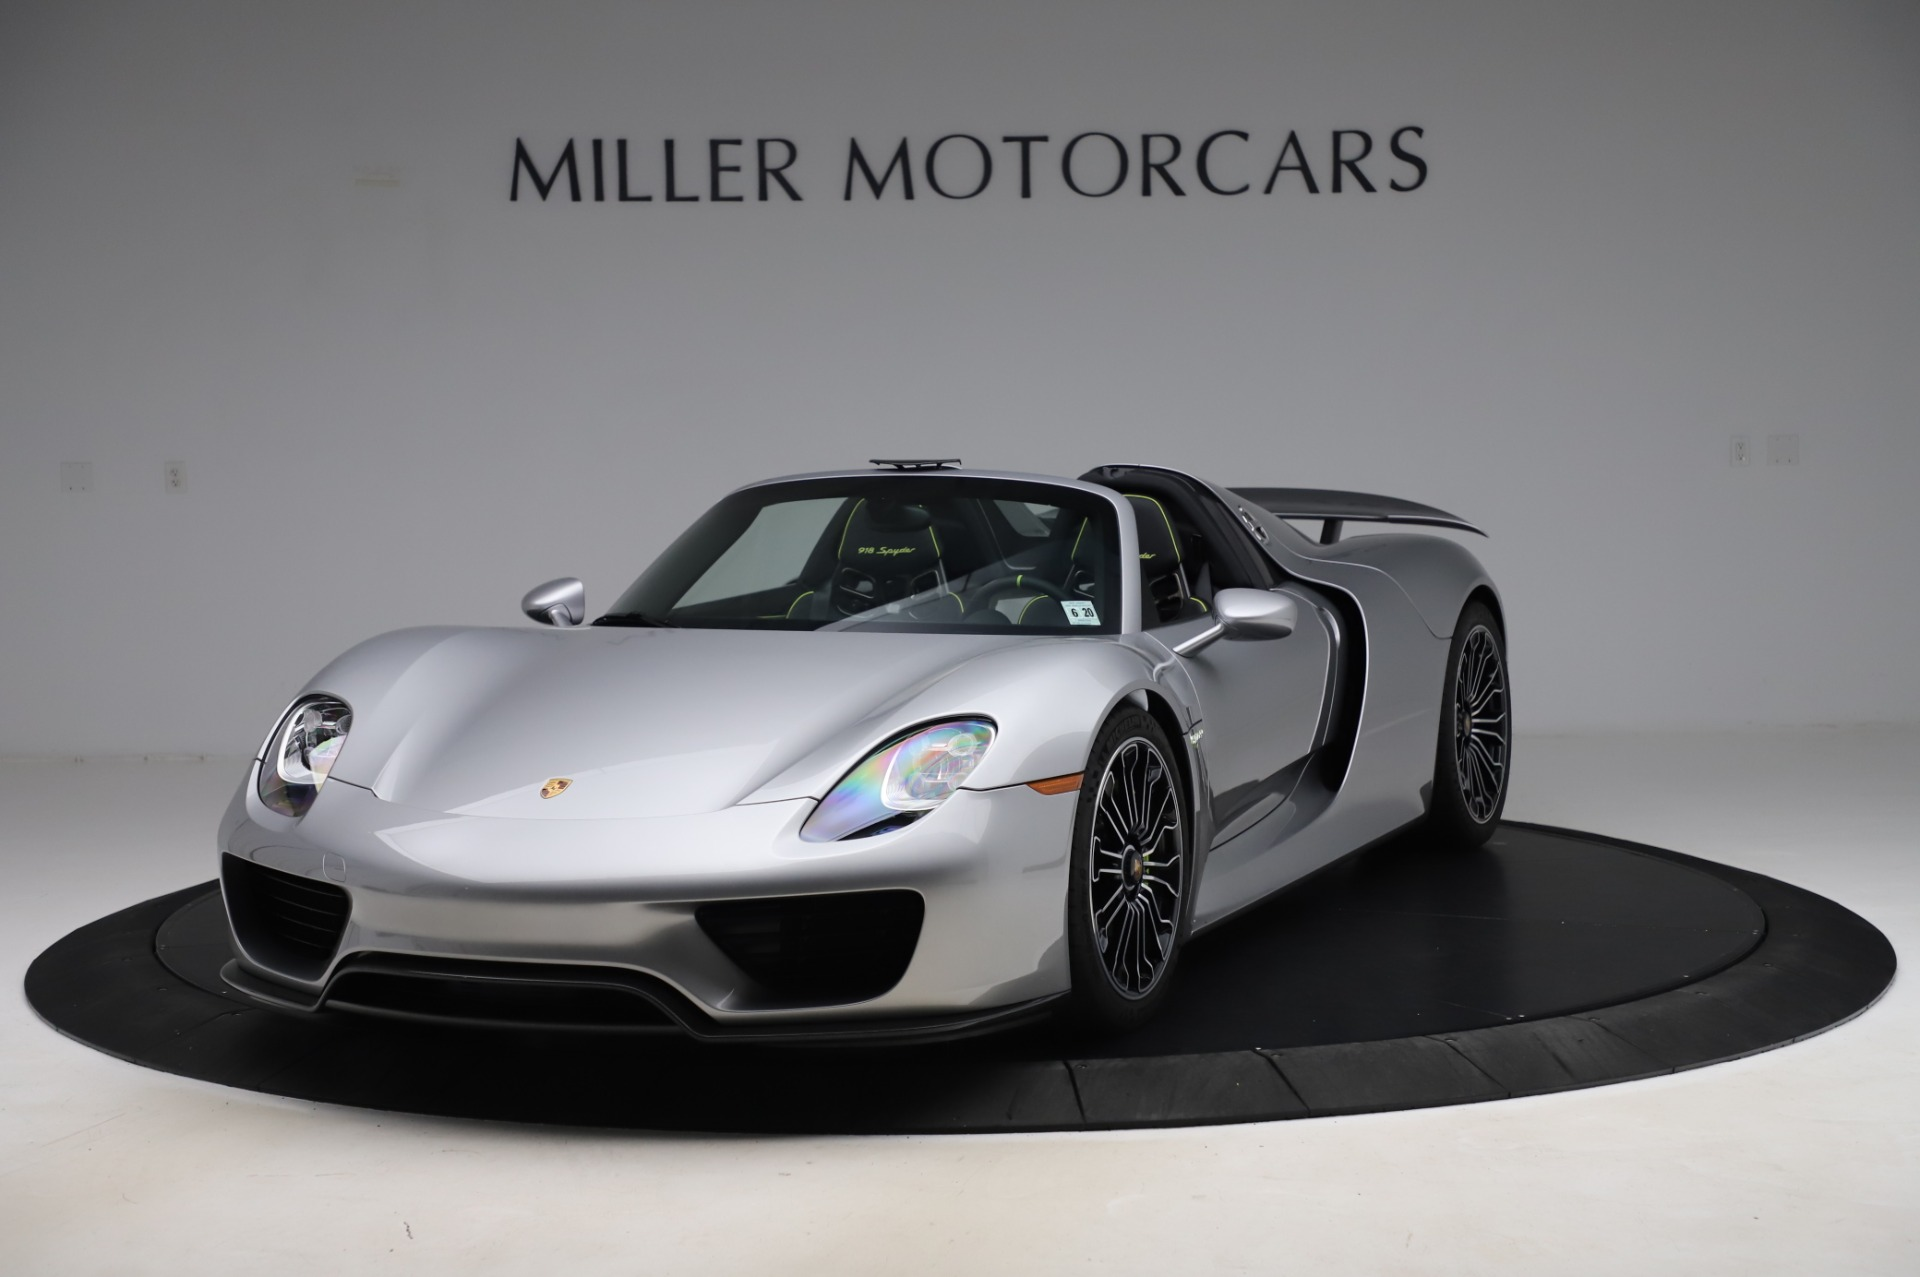 Used 2015 Porsche 918 Spyder for sale $1,355,900 at Pagani of Greenwich in Greenwich CT 06830 1